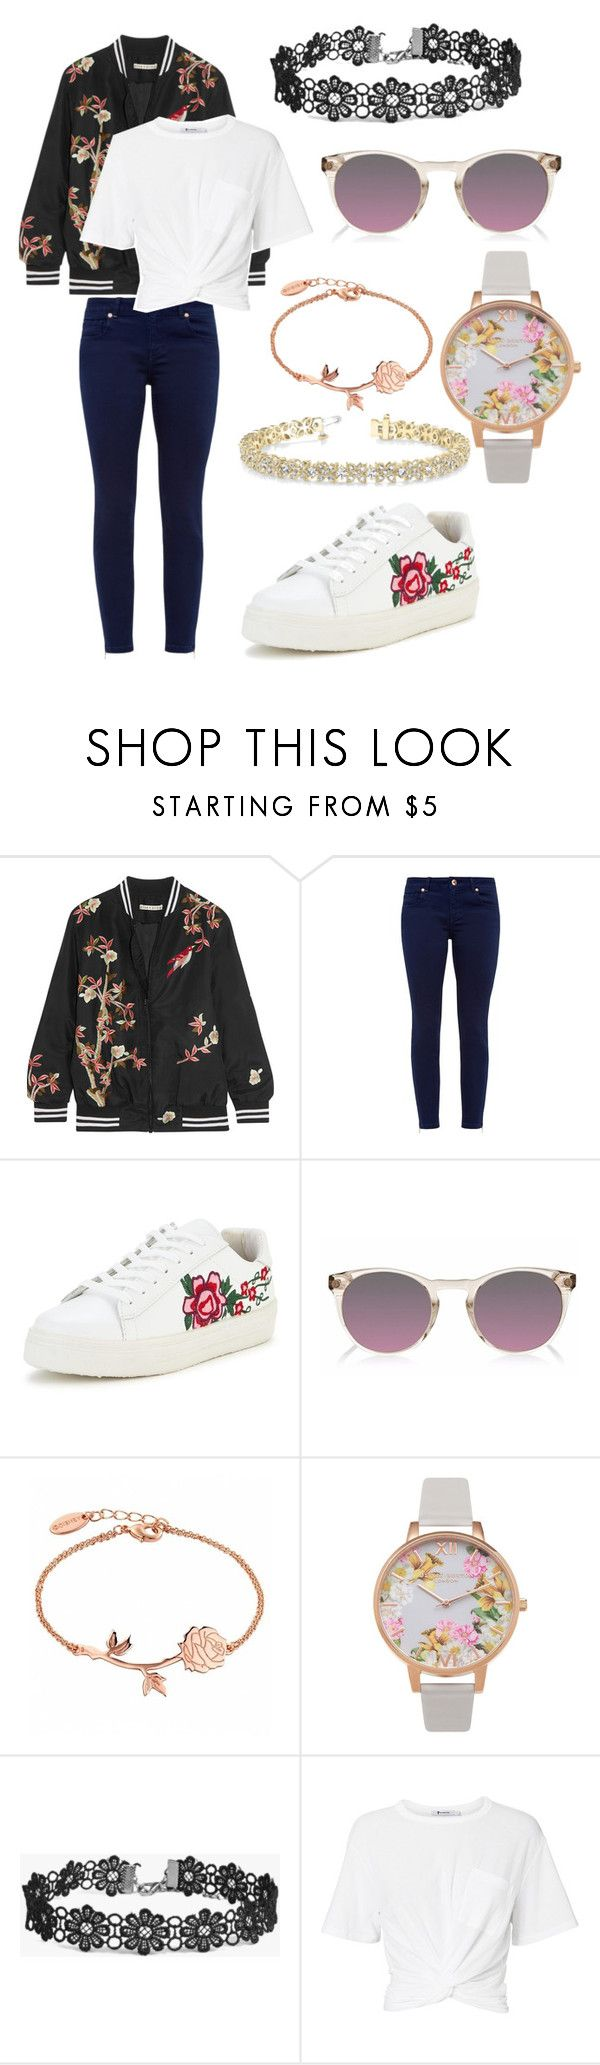 """""""Floral"""" by madzalf ❤ liked on Polyvore featuring Alice + Olivia, Ted Baker, Finlay & Co., Olivia Burton, Boohoo, T By Alexander Wang and Allurez"""